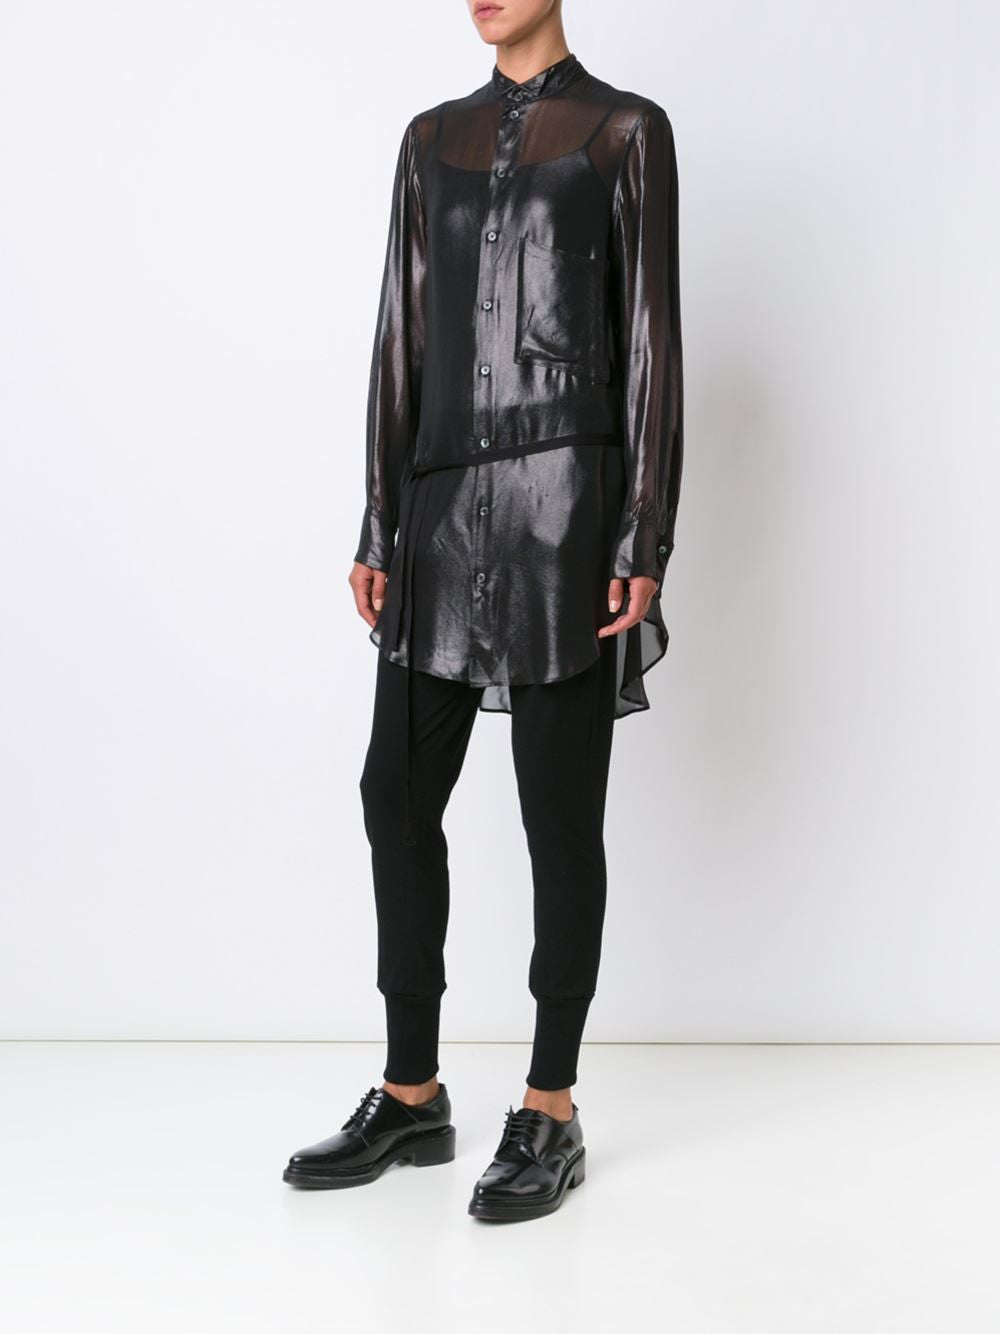 Long Semi-Sheer Shirt | 1602-2016-P-121-097